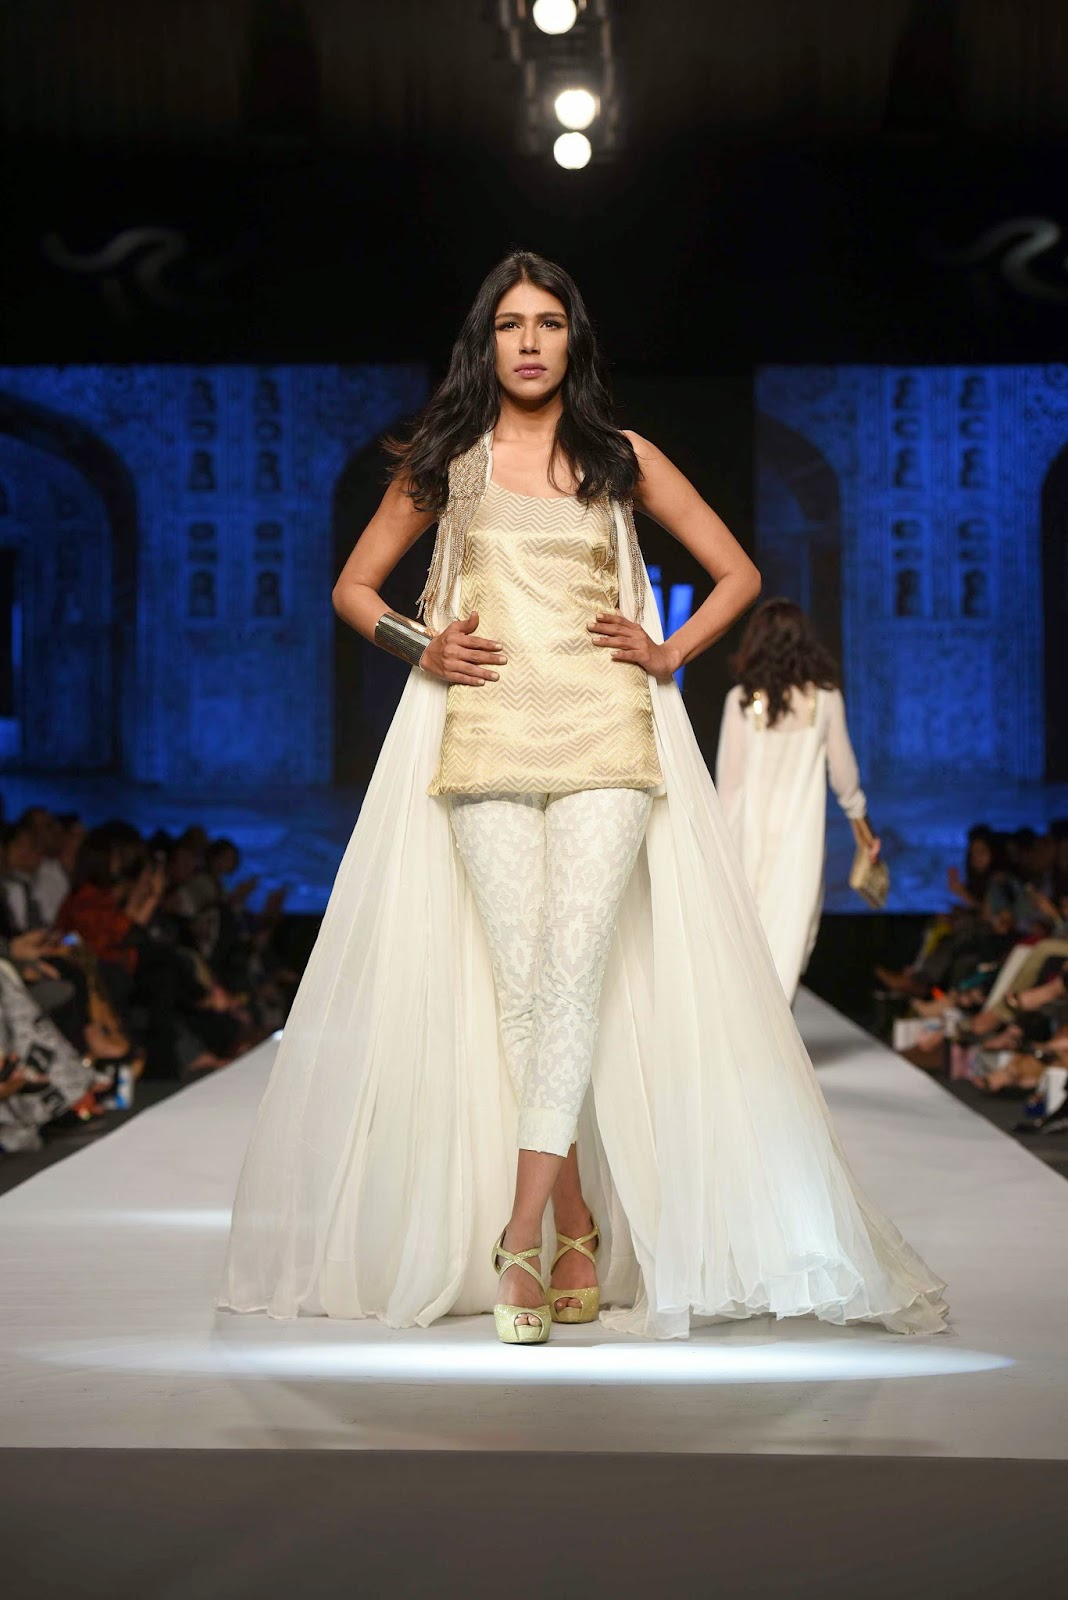 fayeza ansari Gul Ahmed Telenor Fashion Pakistan Week 2015